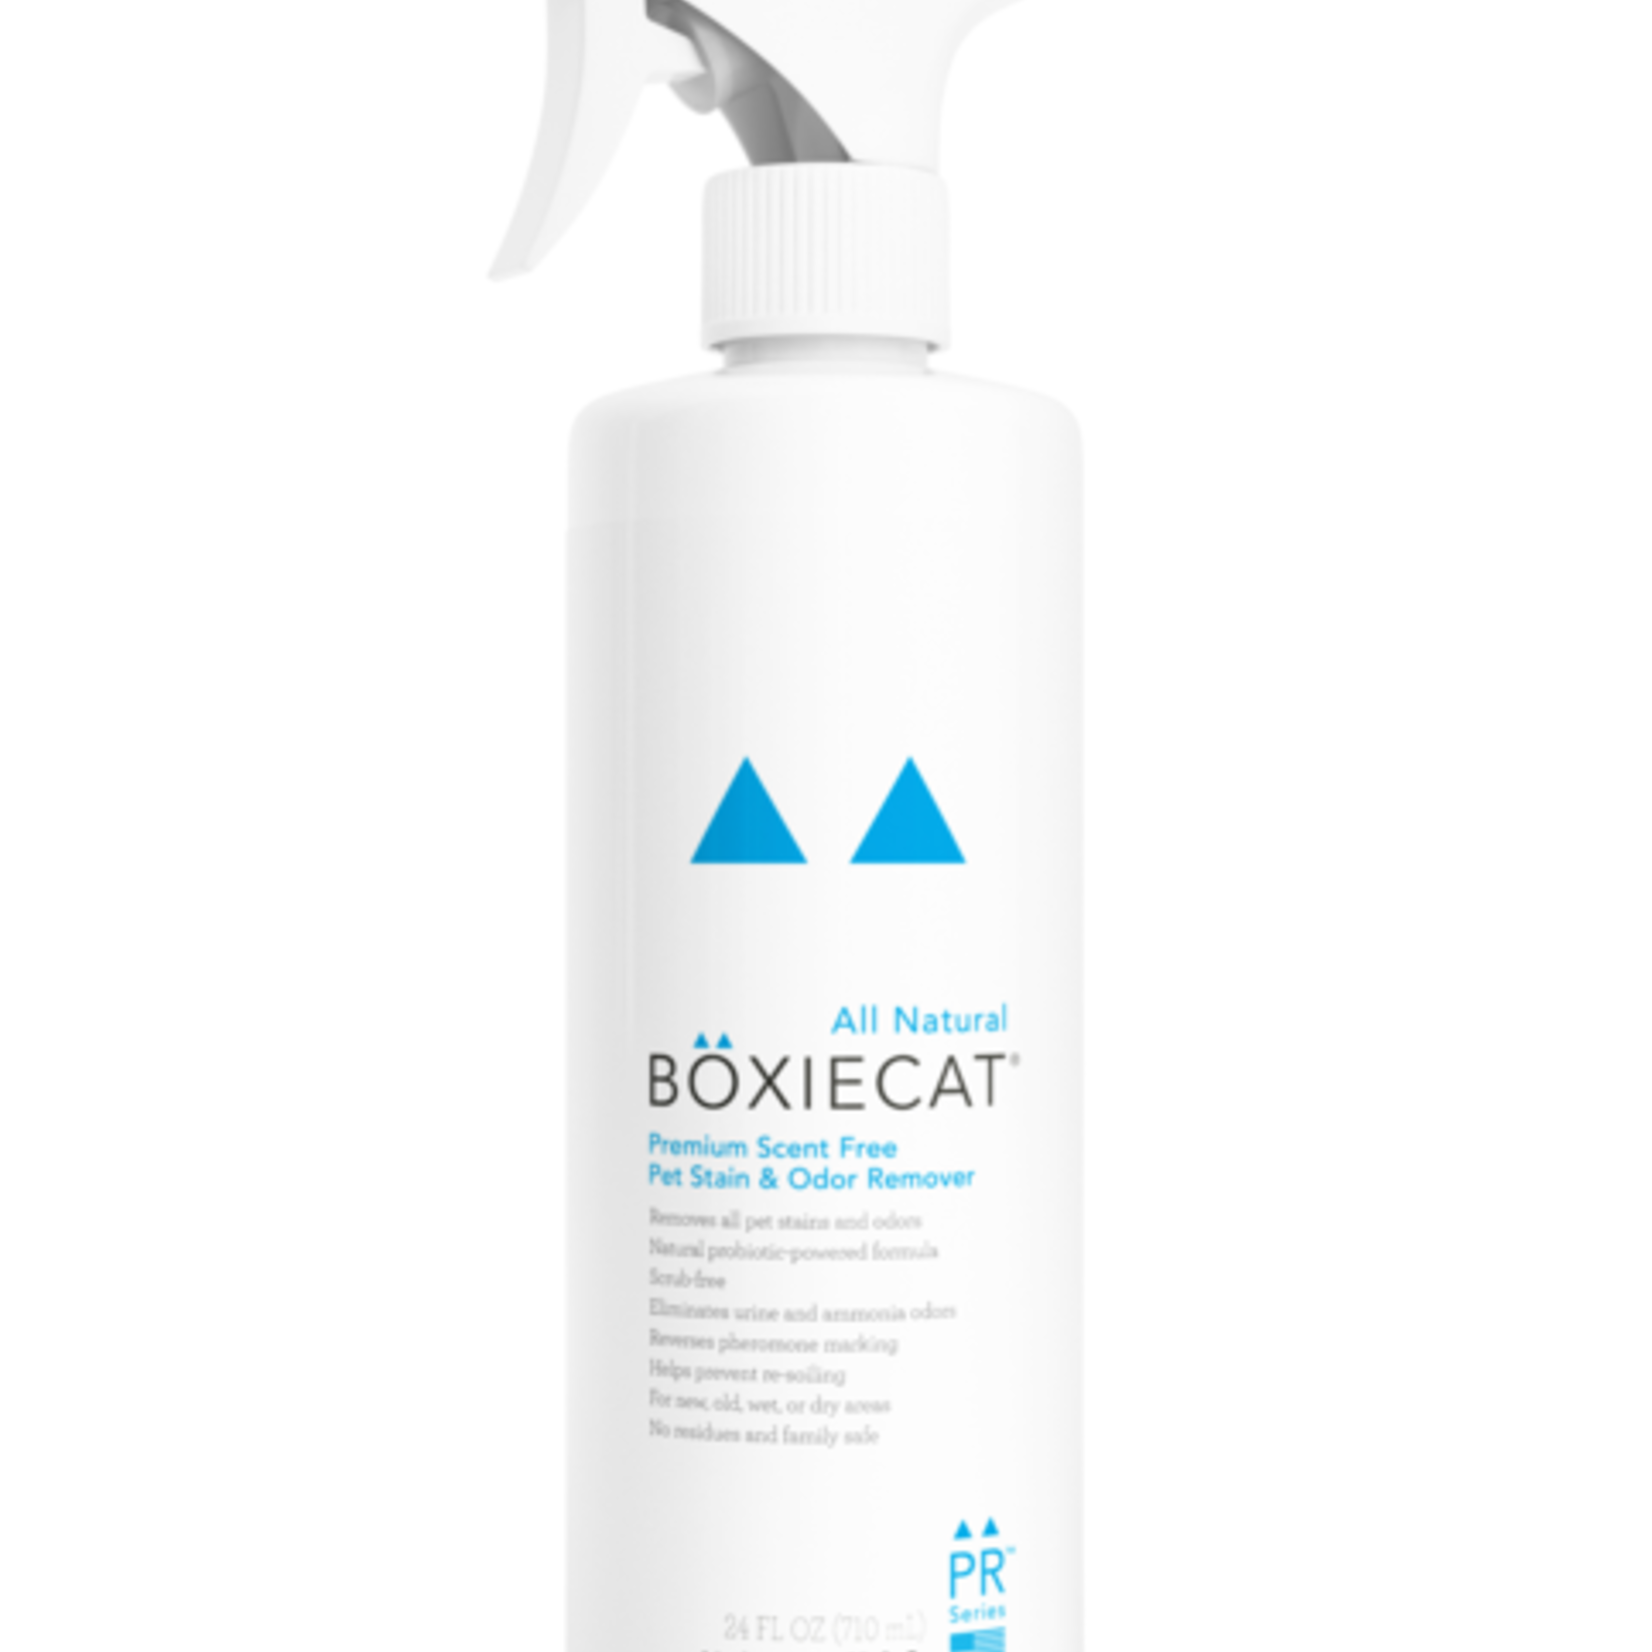 Boxie Cat Boxie Cat Scent-Free Stain & Odor Remover 24 oz